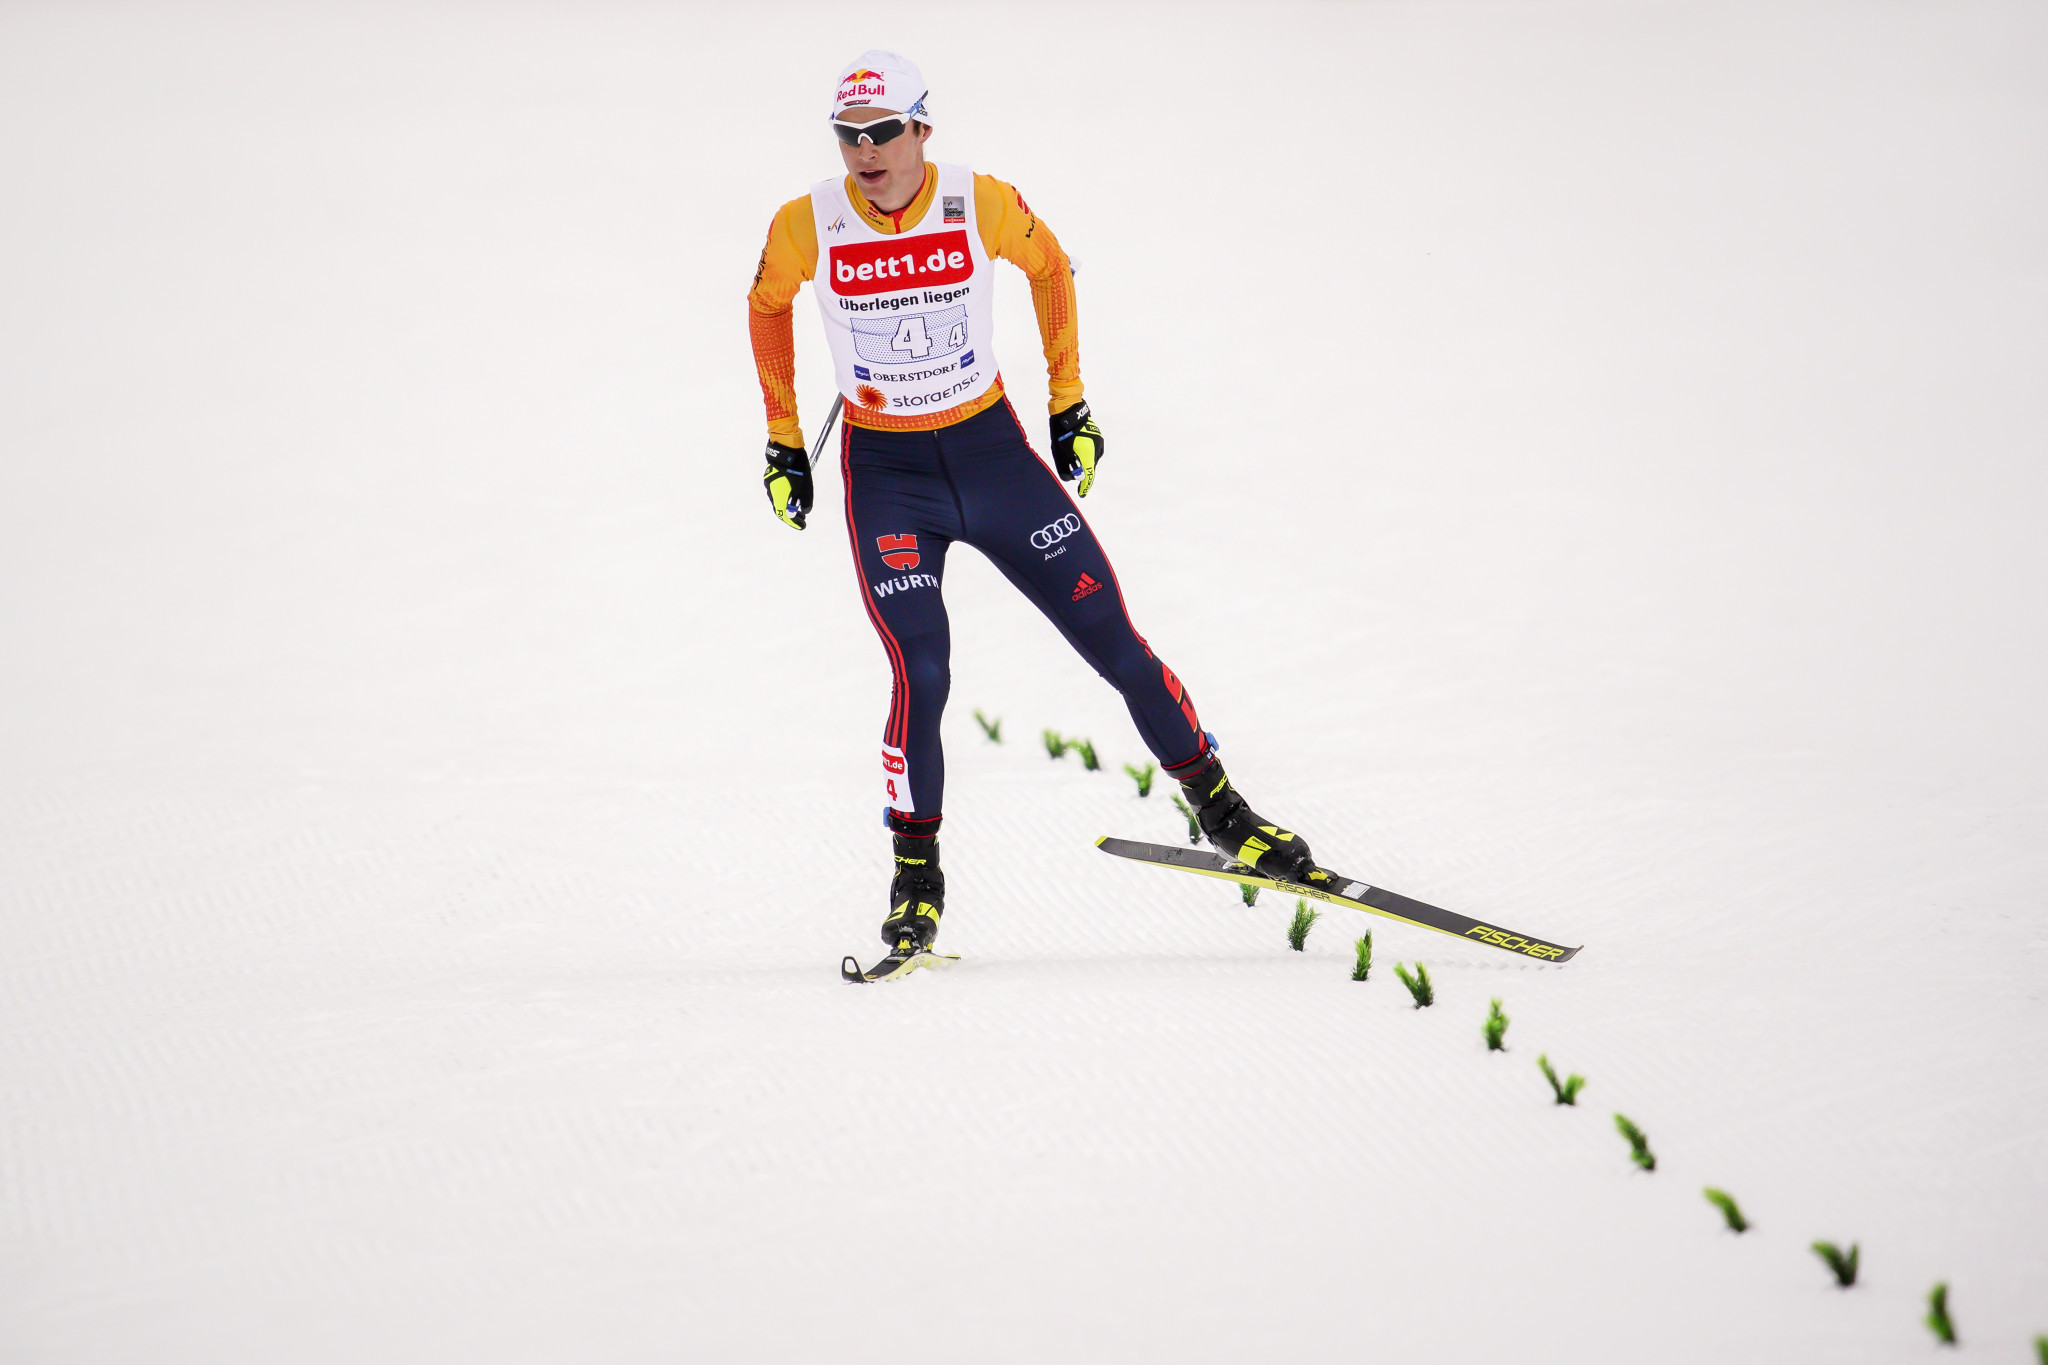 Geiger earns second successive victory at FIS Nordic Combined World Cup